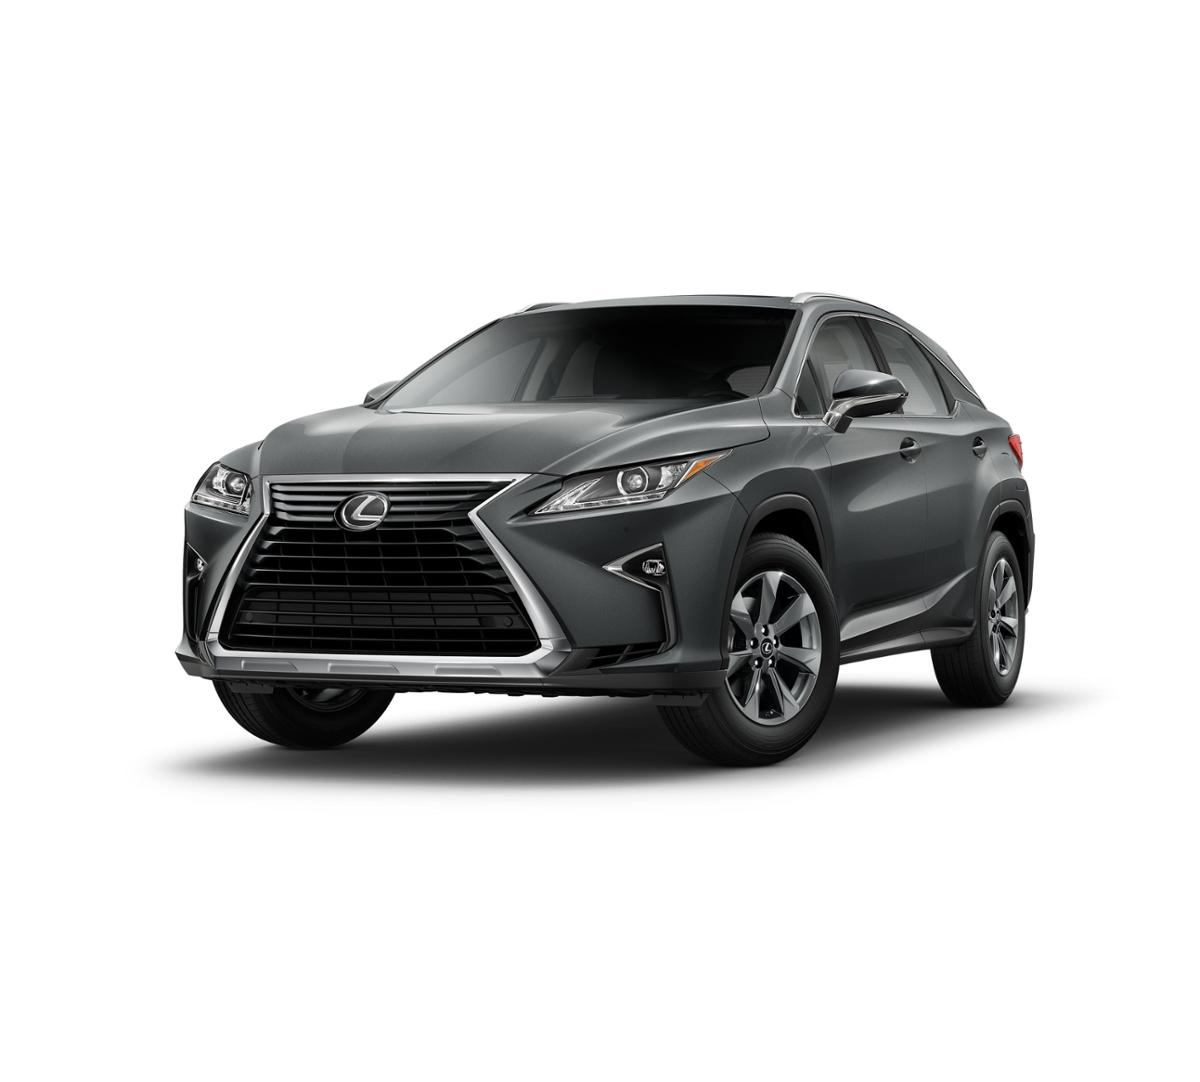 2018 lexus rx 350 nebula gray pearl l23882 lexus carlsbad. Black Bedroom Furniture Sets. Home Design Ideas